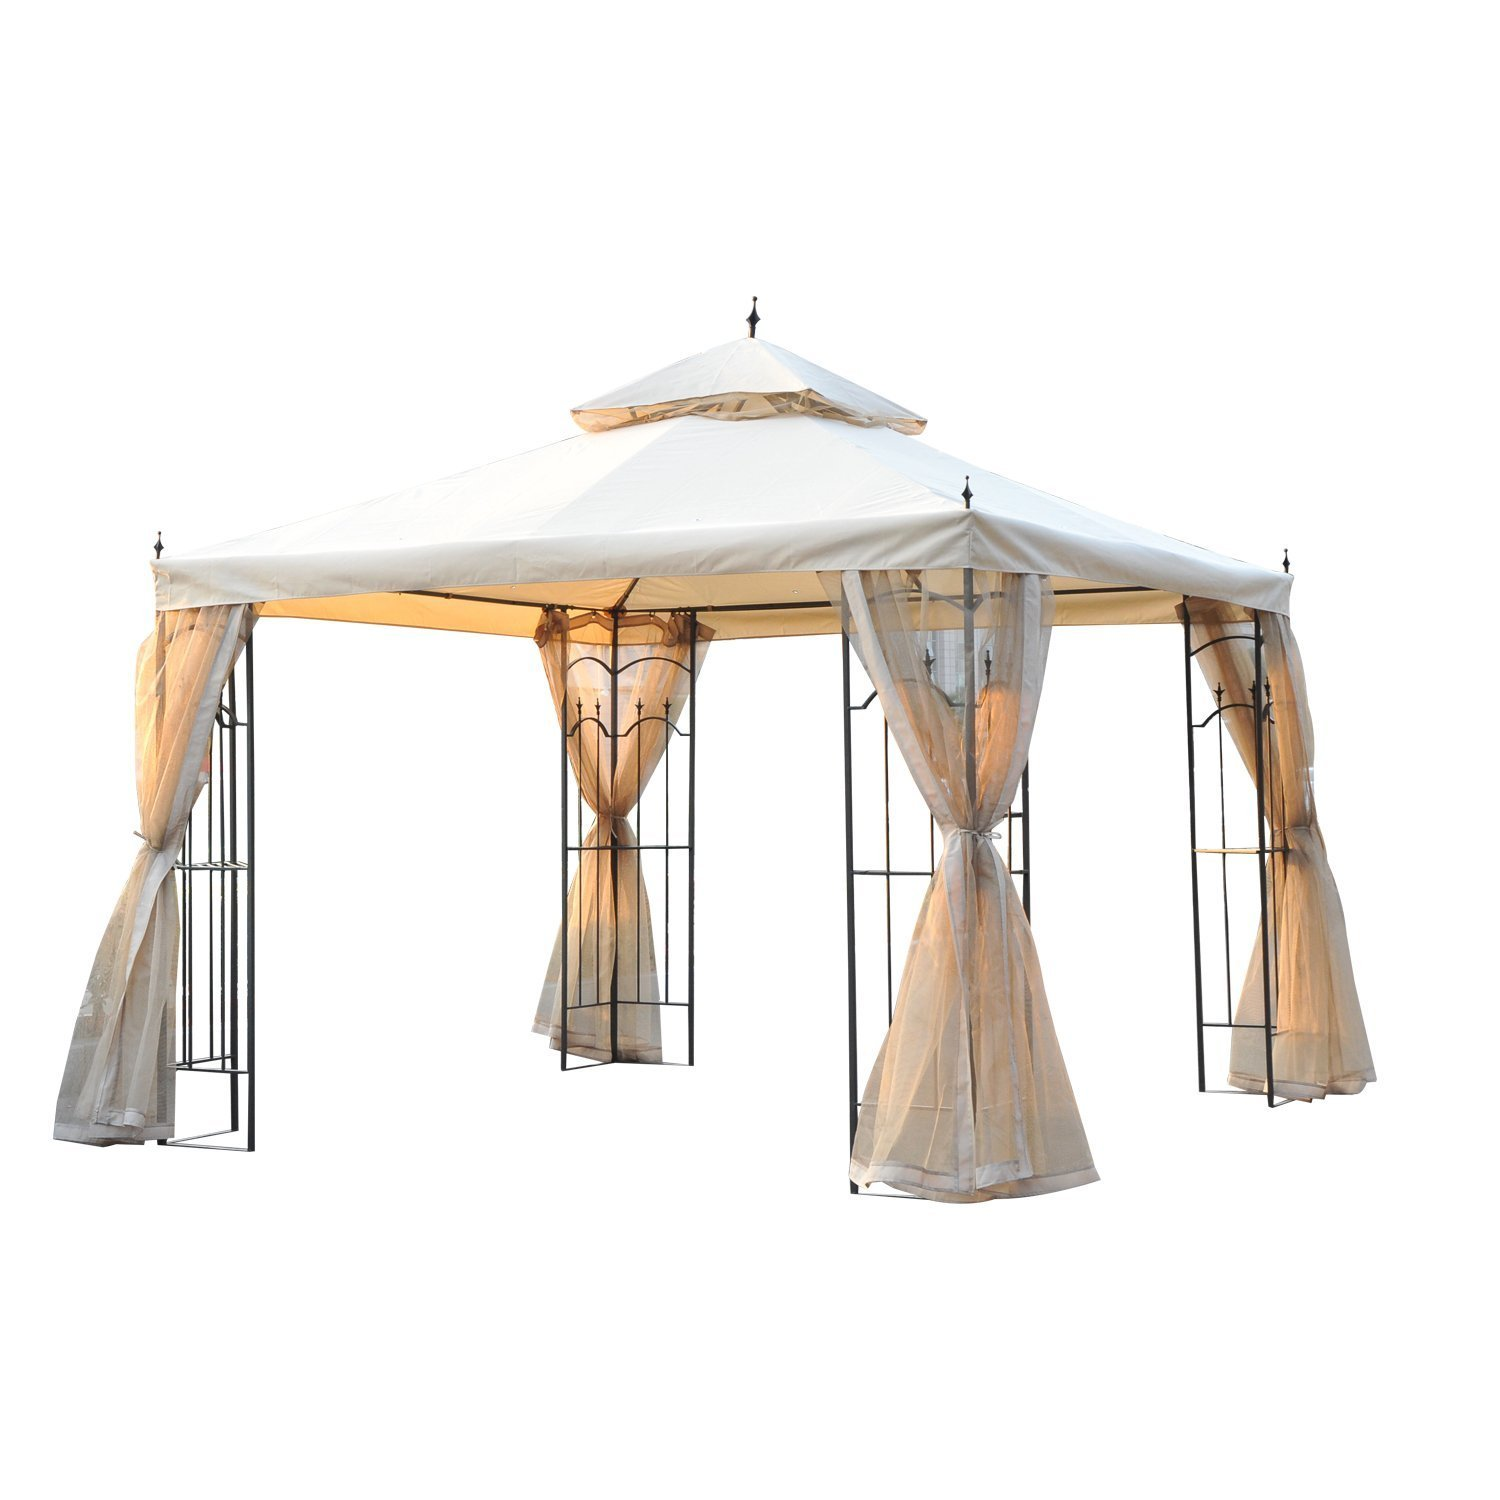 Outsunny 10' x 10' Steel Outdoor Garden Gazebo with Mesh Curtains - Beige